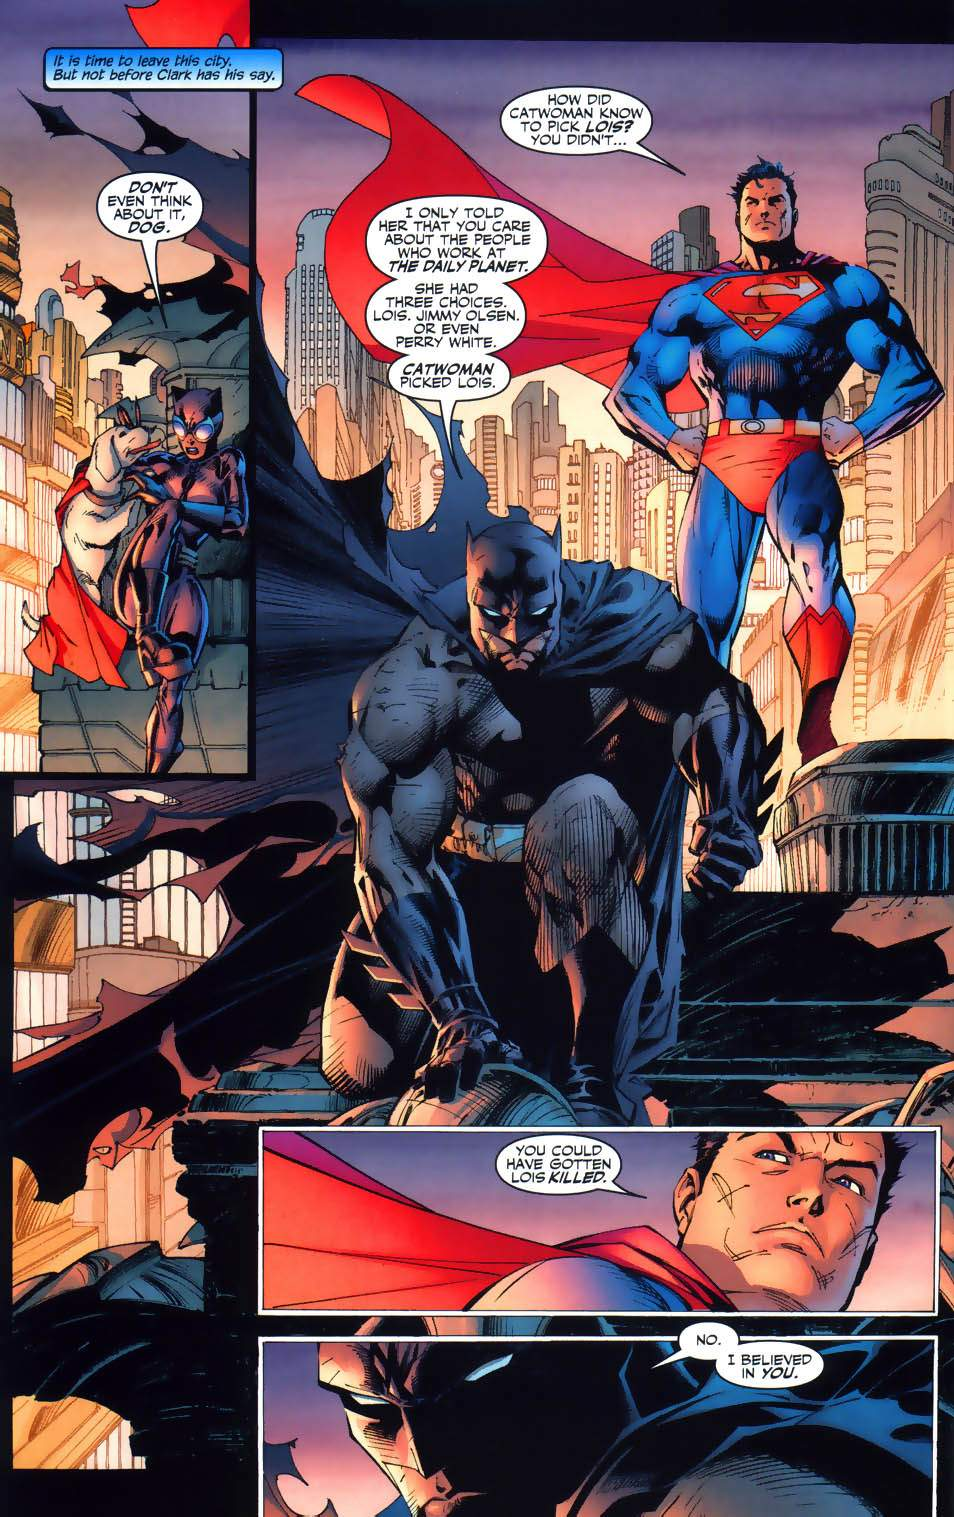 Read Batman Hush Issue 5 Online Page 20